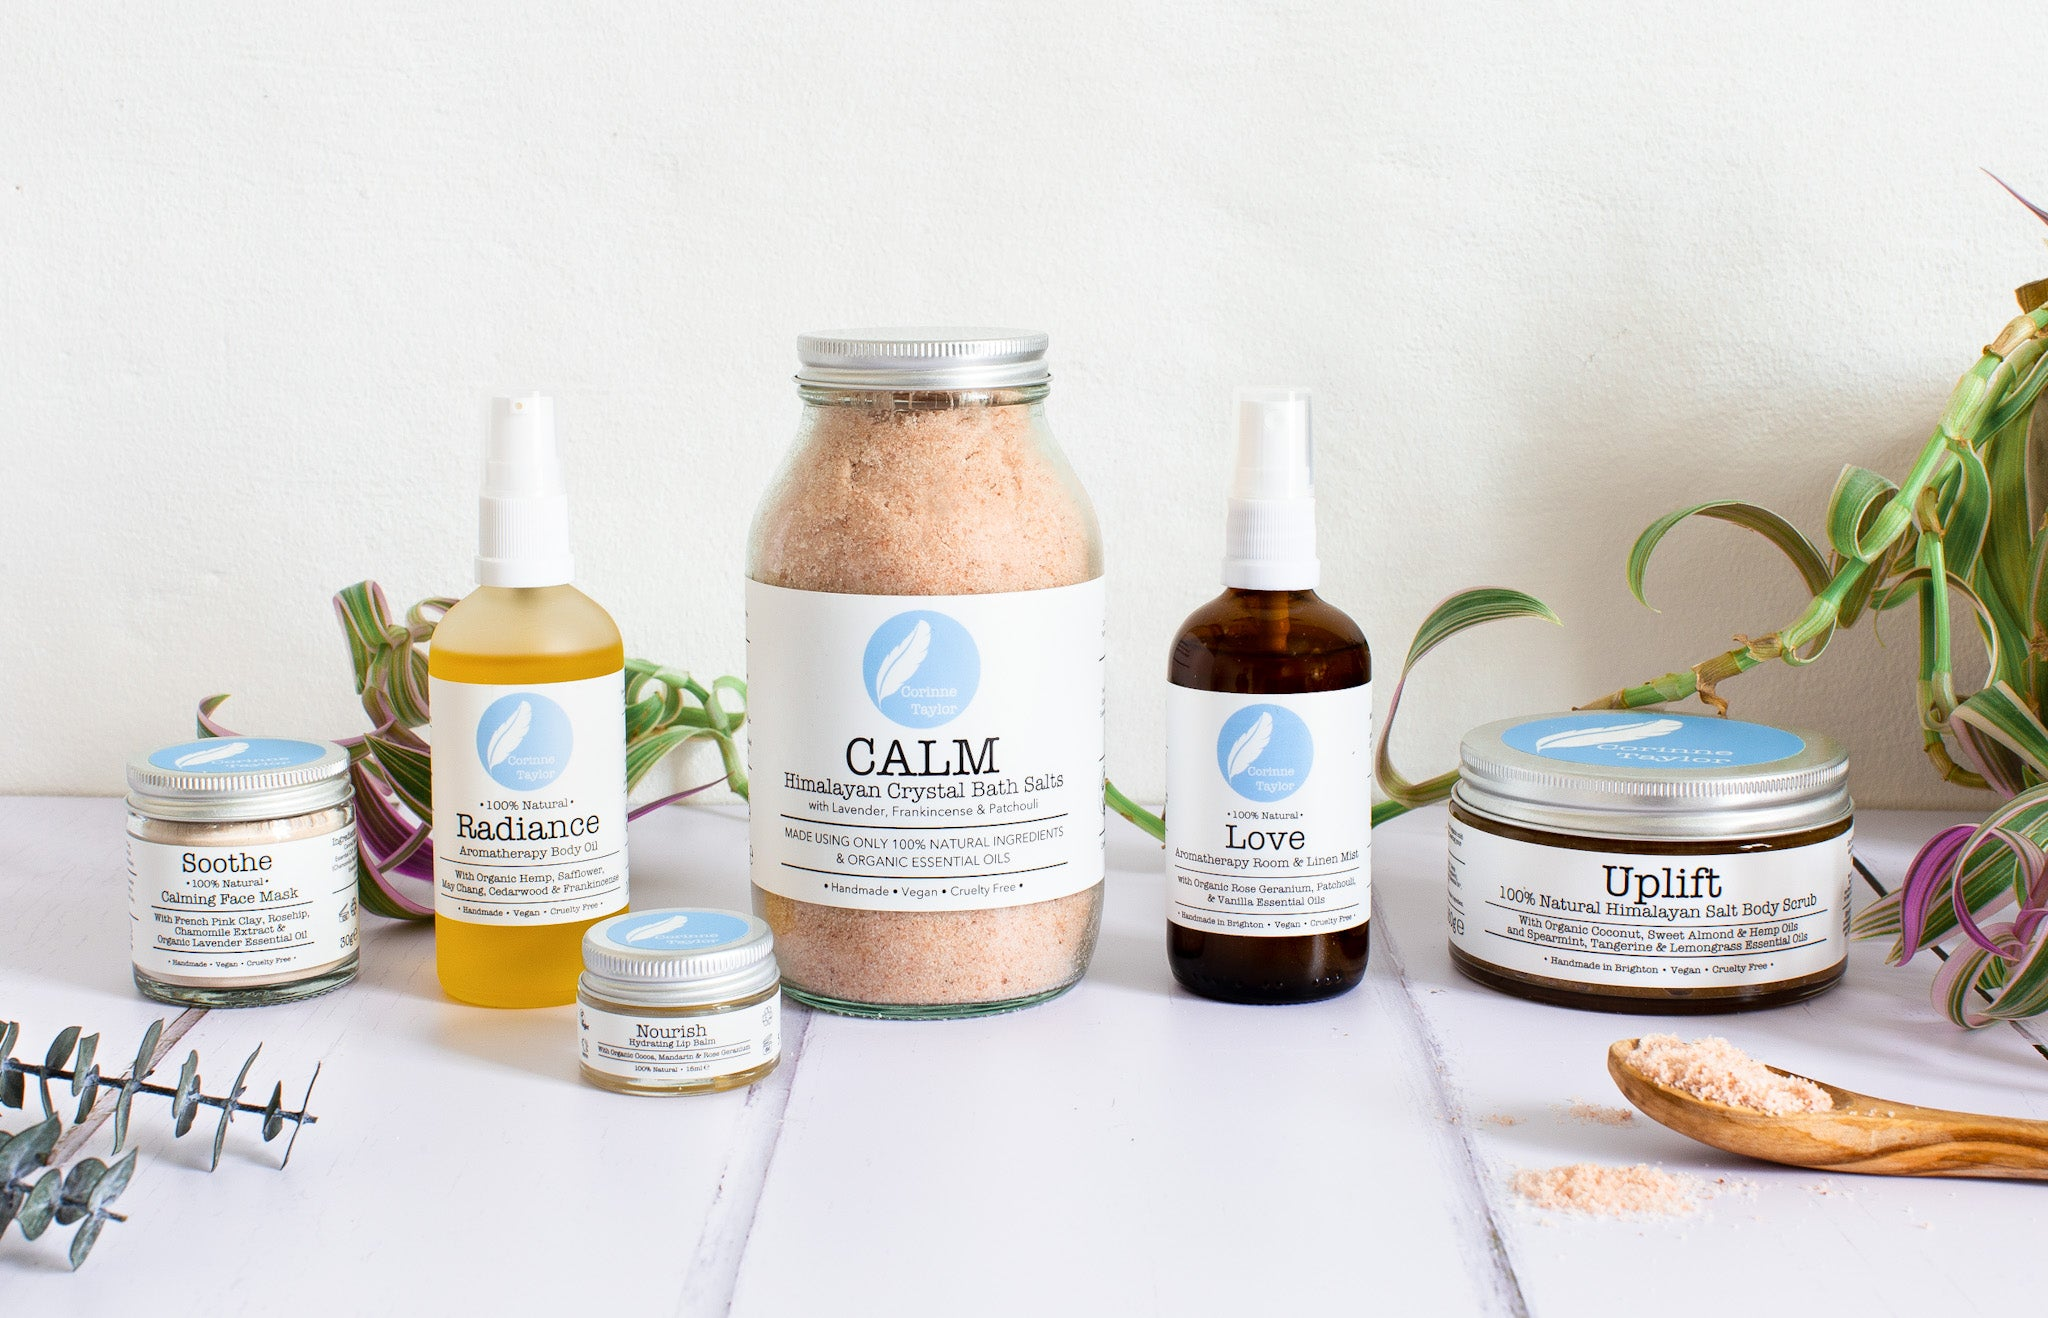 the corinne taylor wellness blog, aromatherapy, self care, wellbeing, mental health, anxiety, mood boost, skin care